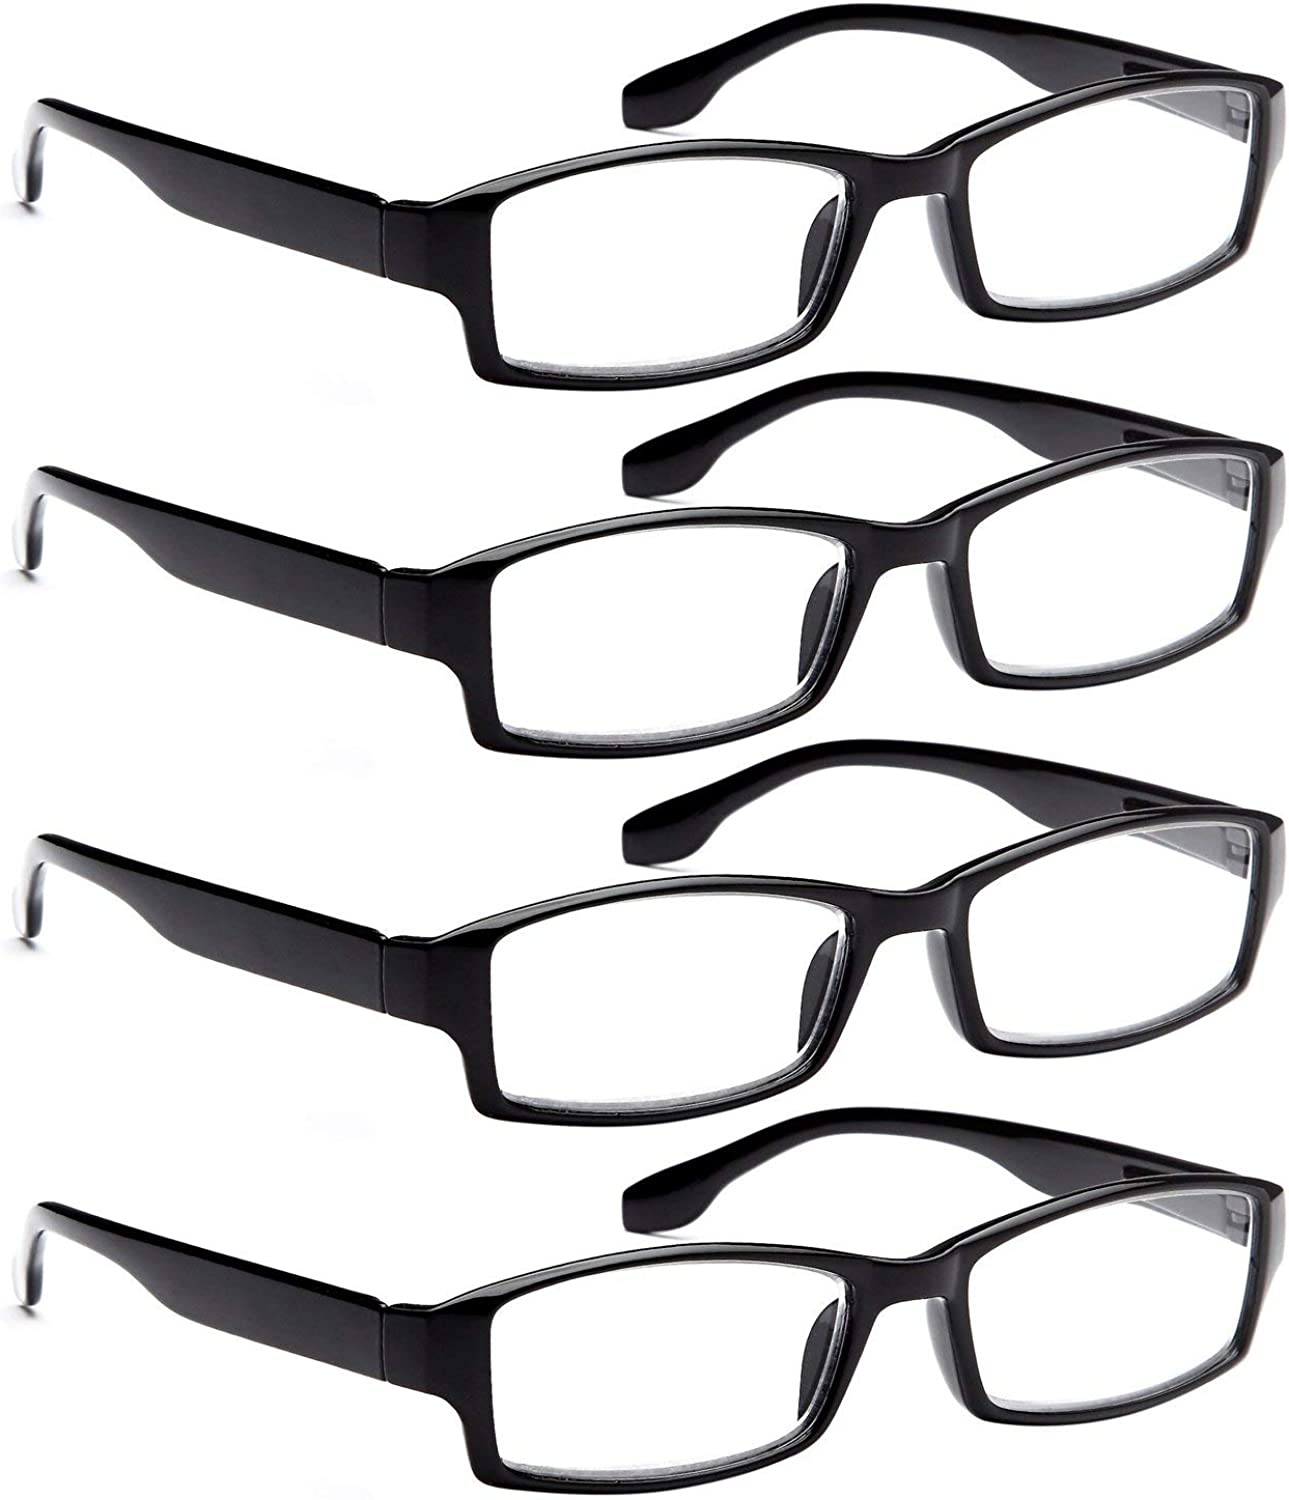 ALTEC Vision Reading Glasses - 4 and Mesa Mall Spring NEW before selling Pairs Wome Men Hinge